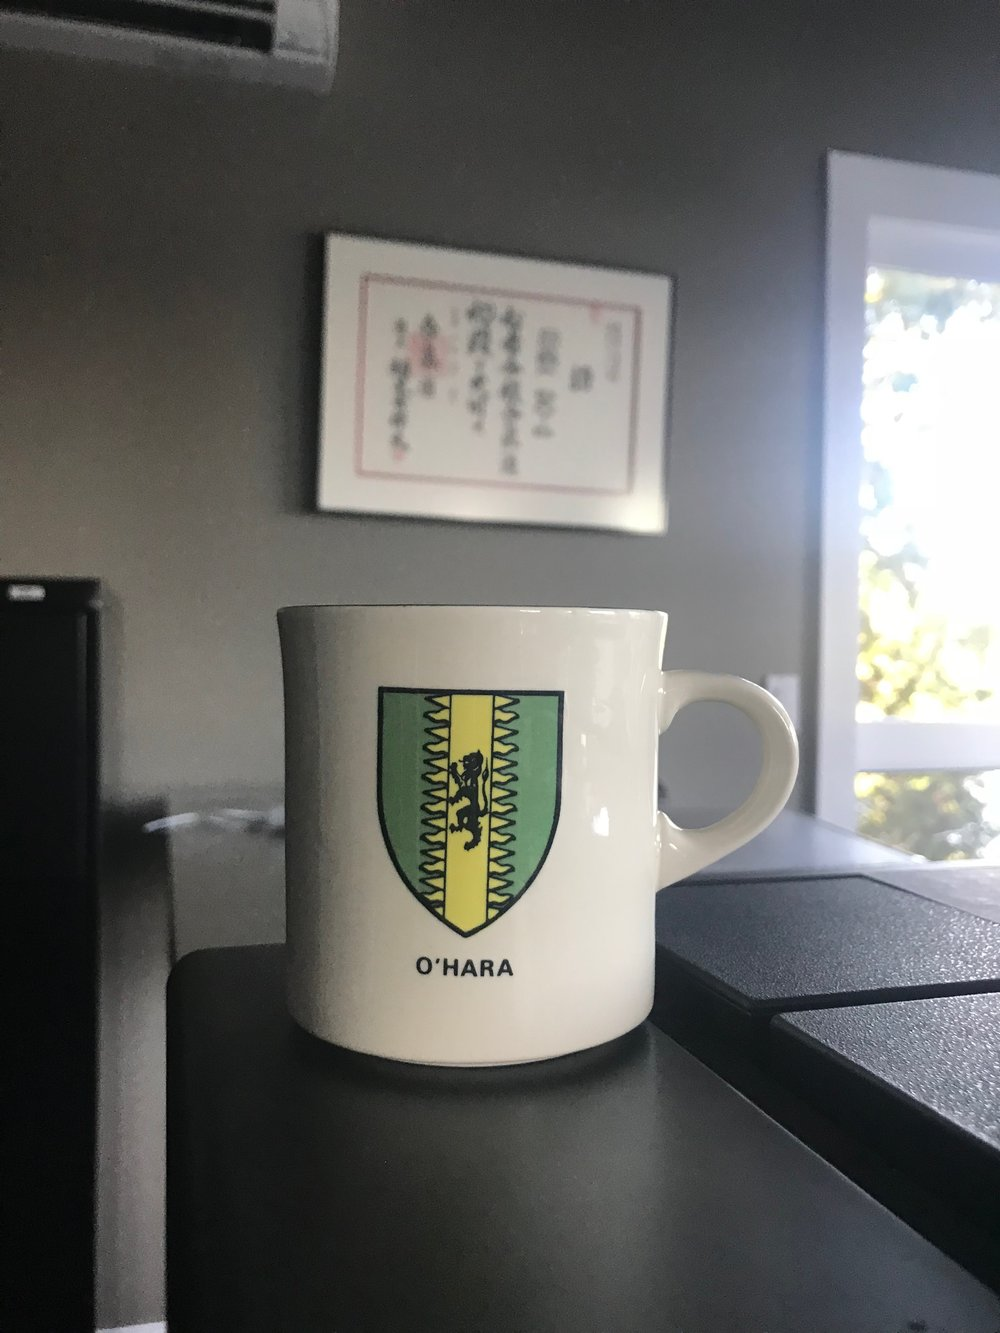 Here is the O'Hara family crest on a coffee mug in my office.